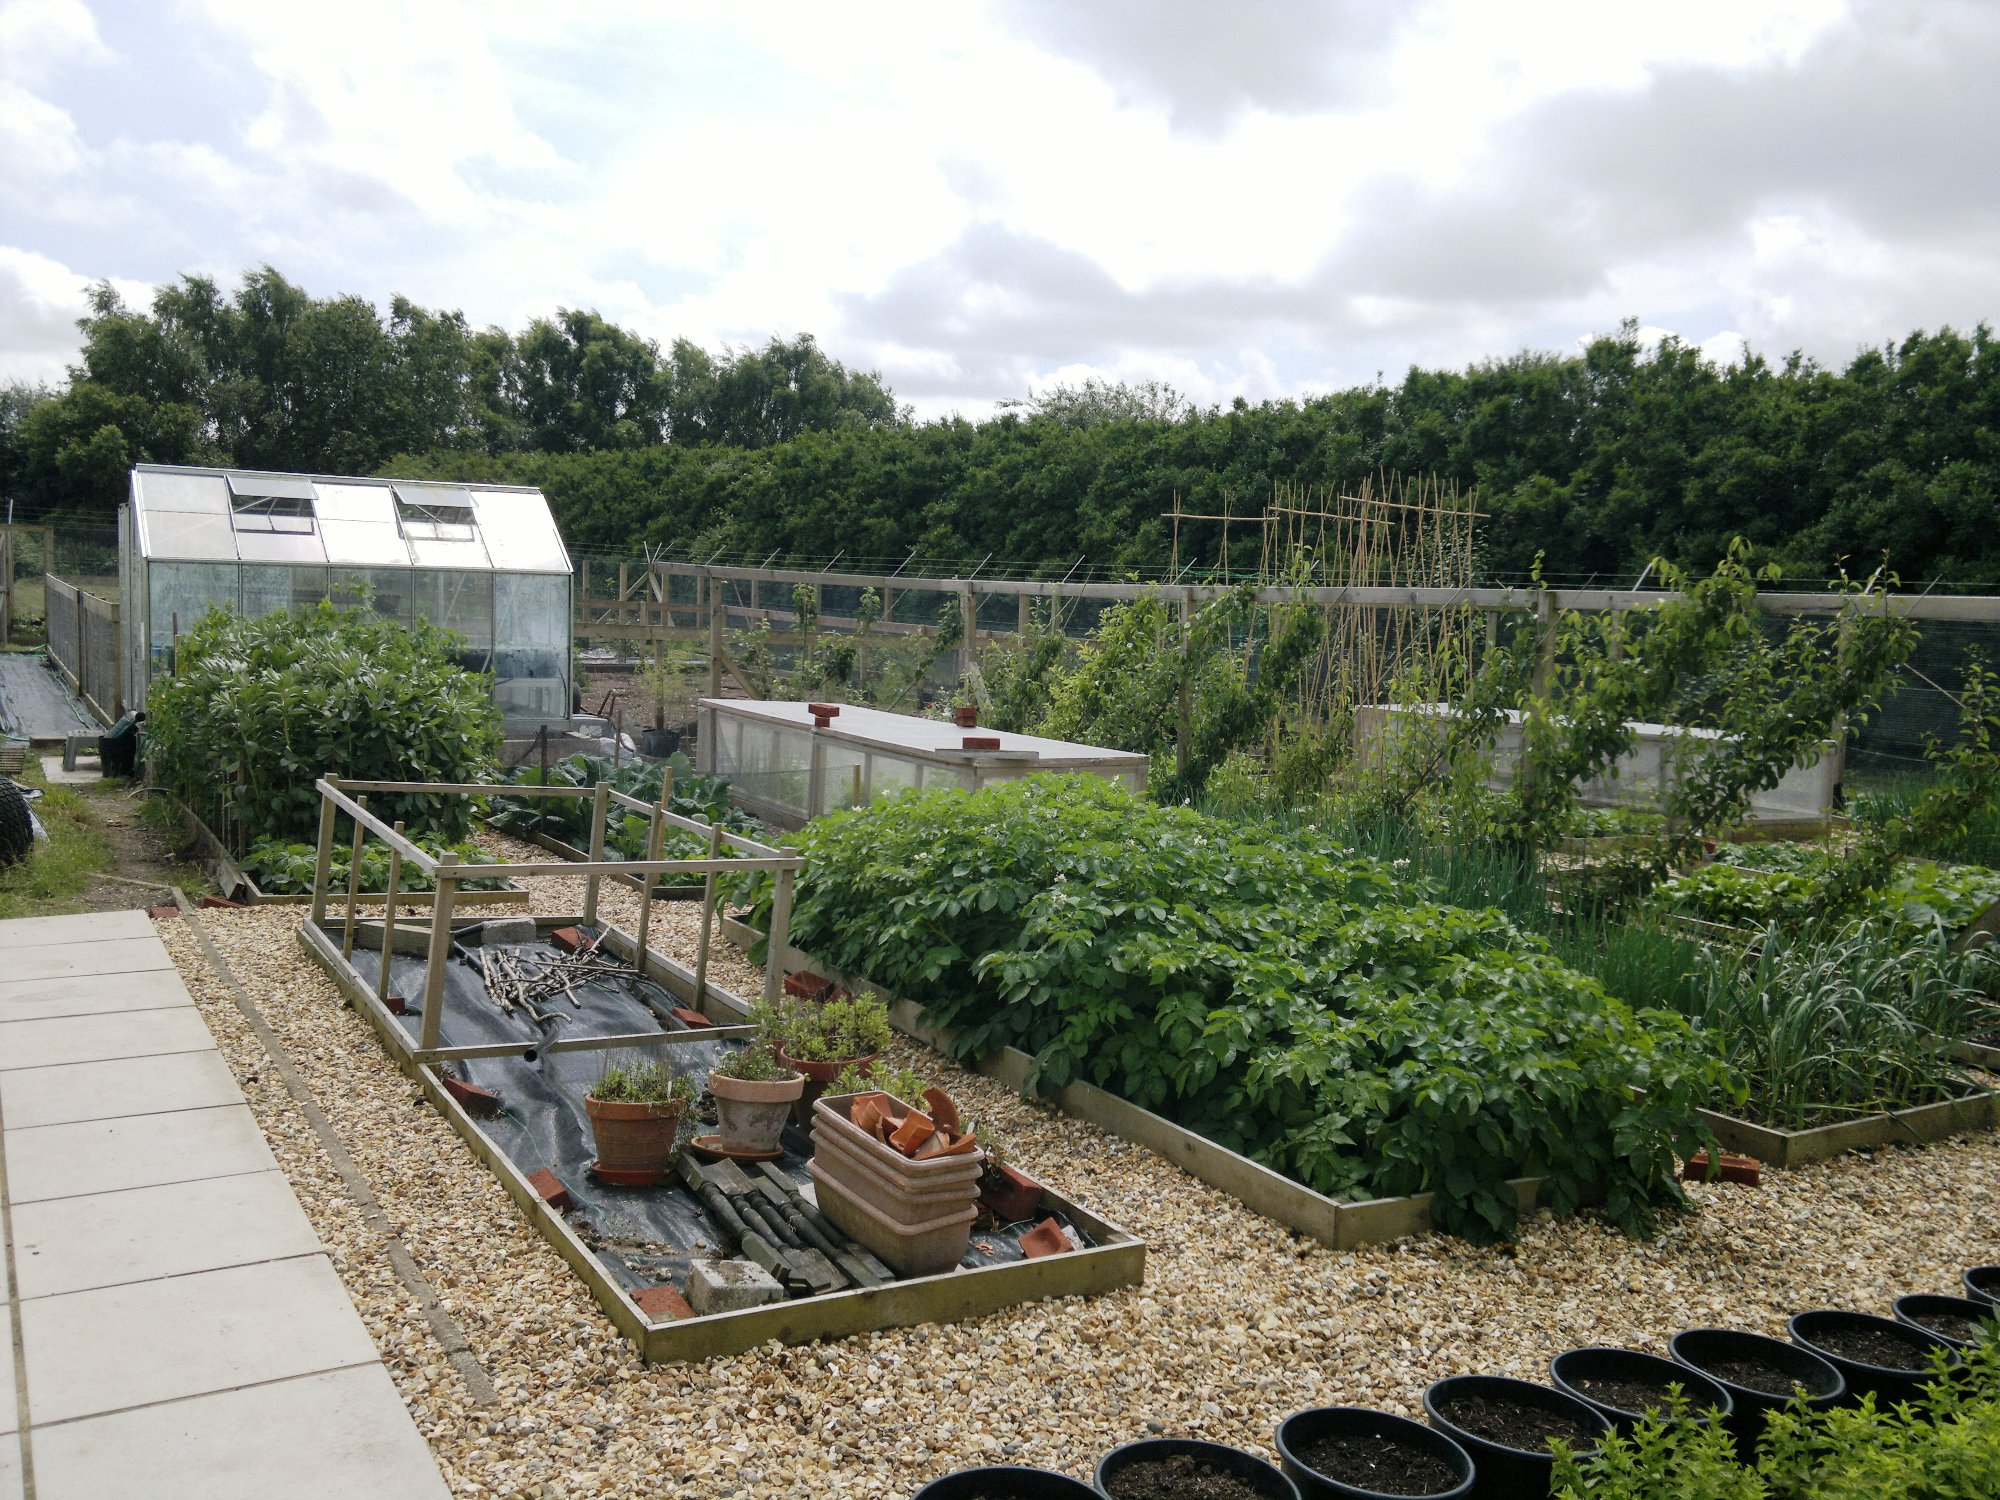 Main vegetable beds